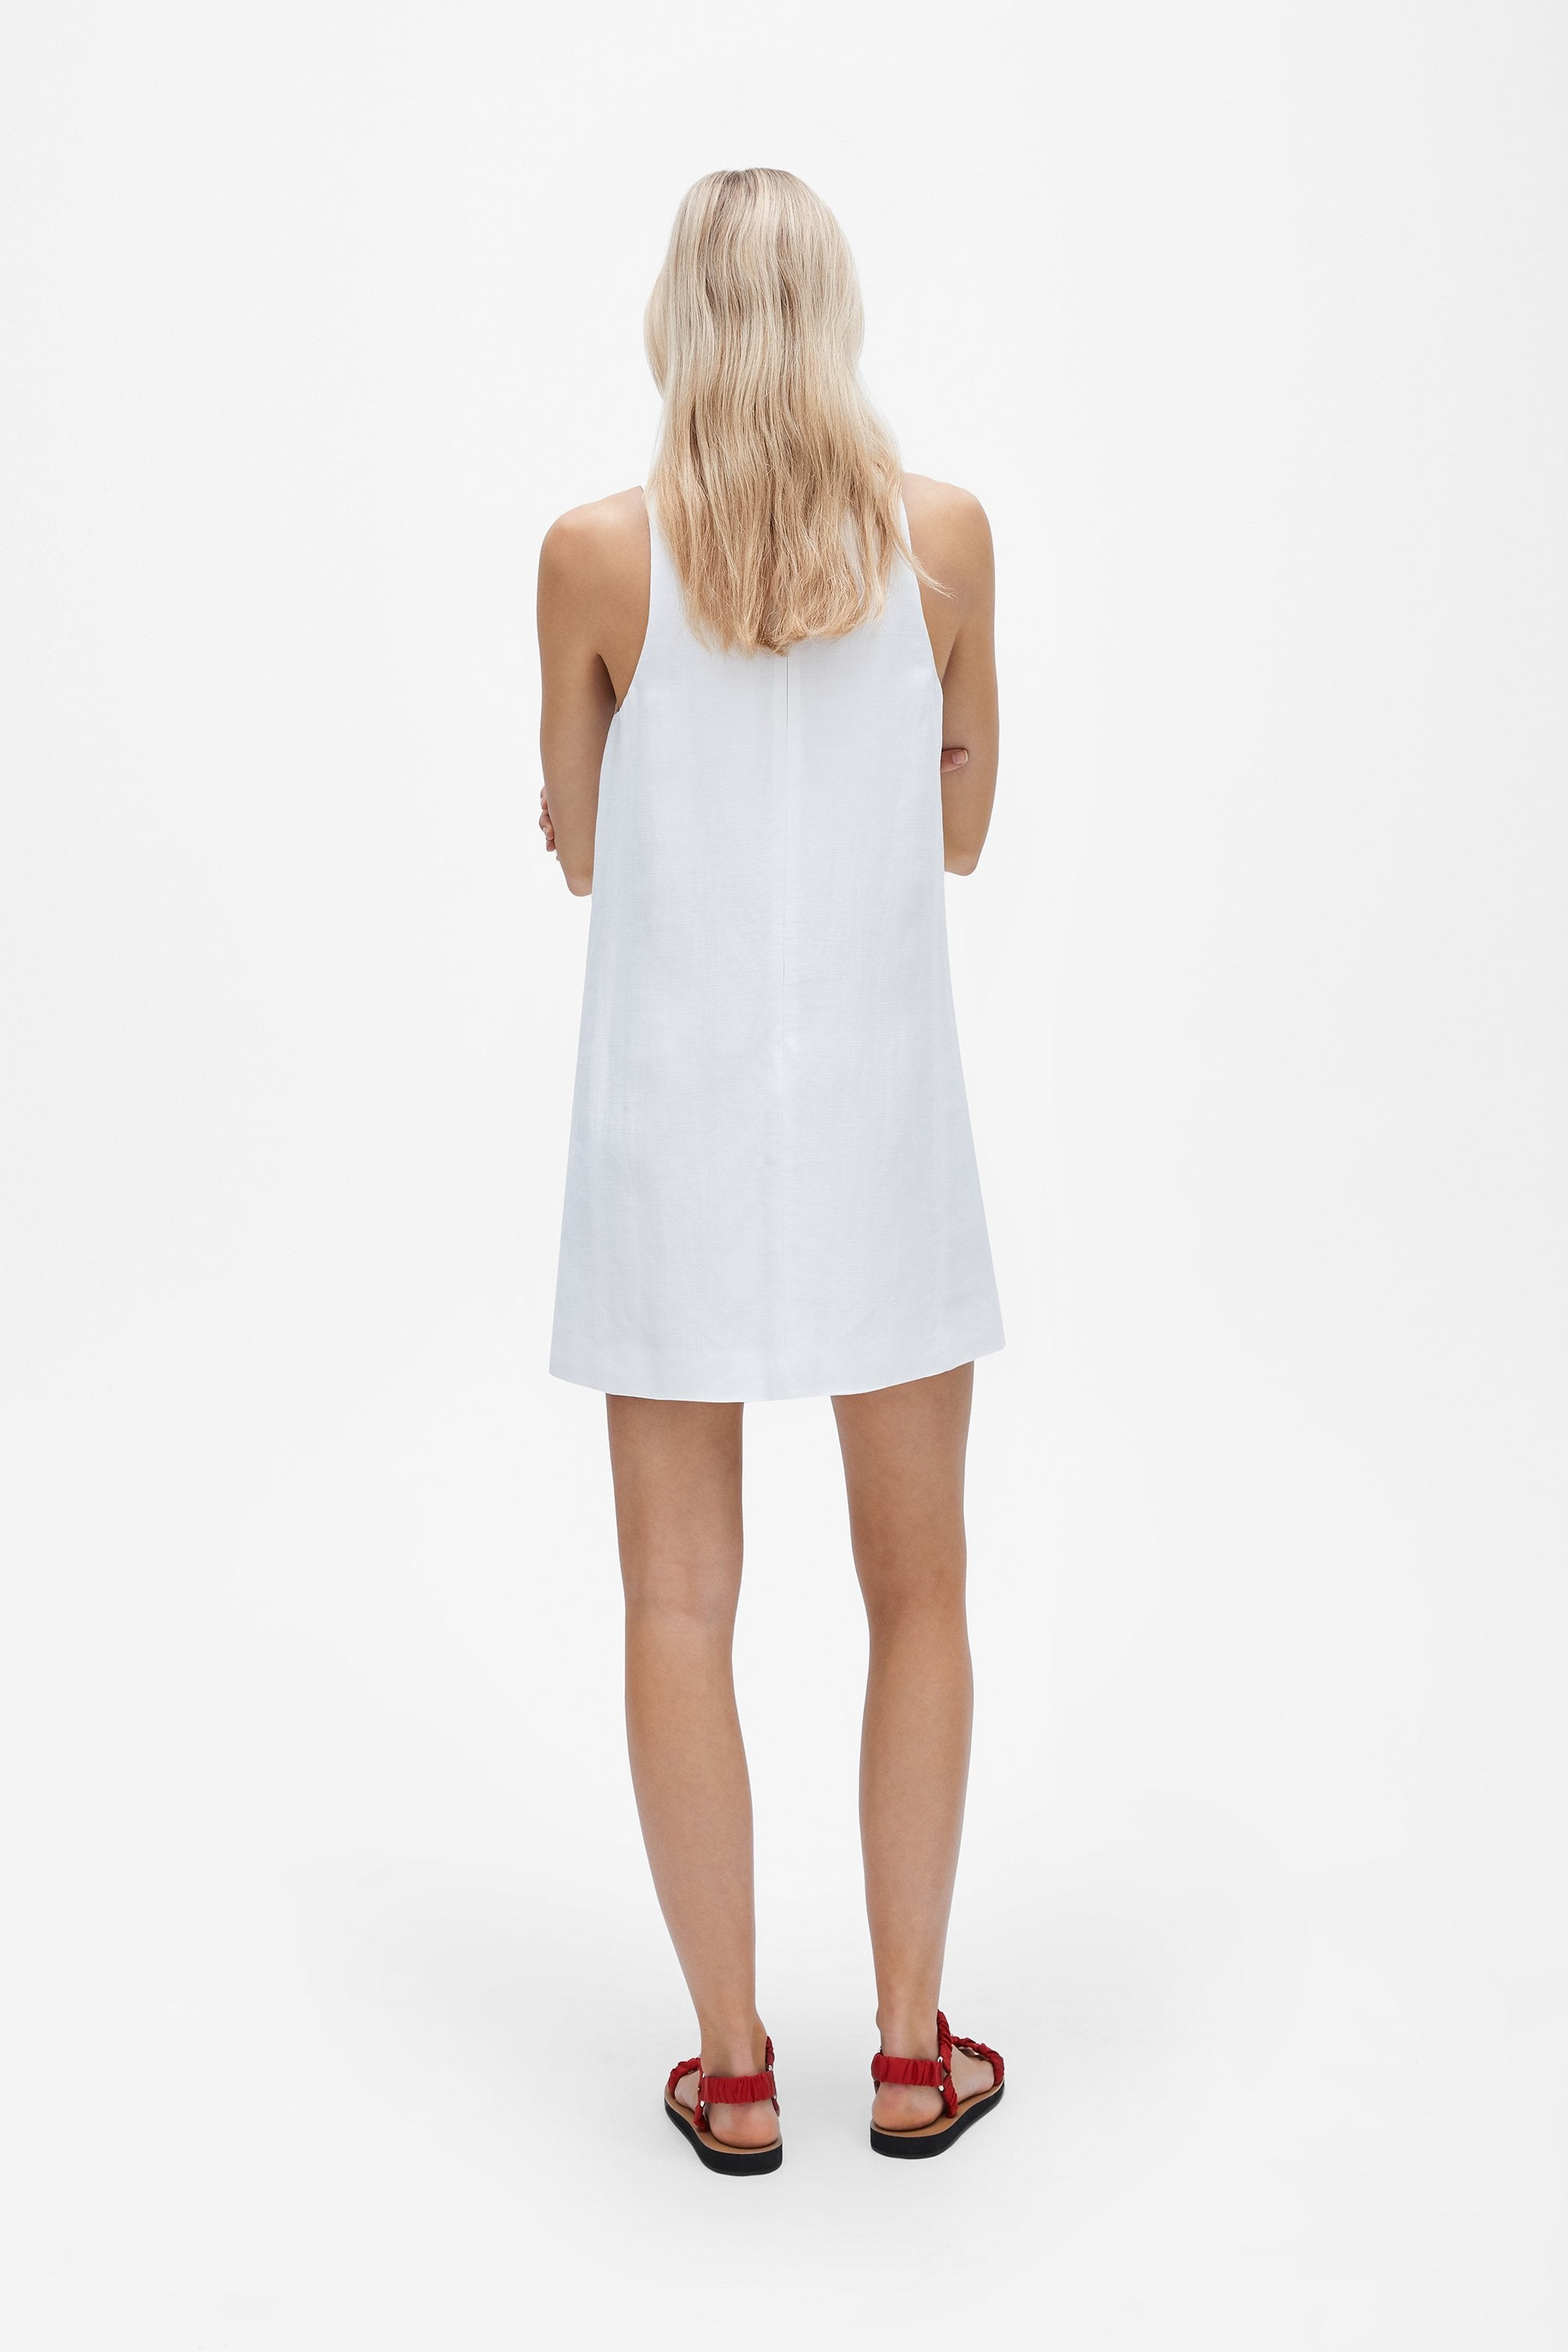 Crew neck mini dress - Linen blend - White - Resortwear dress - Her Line